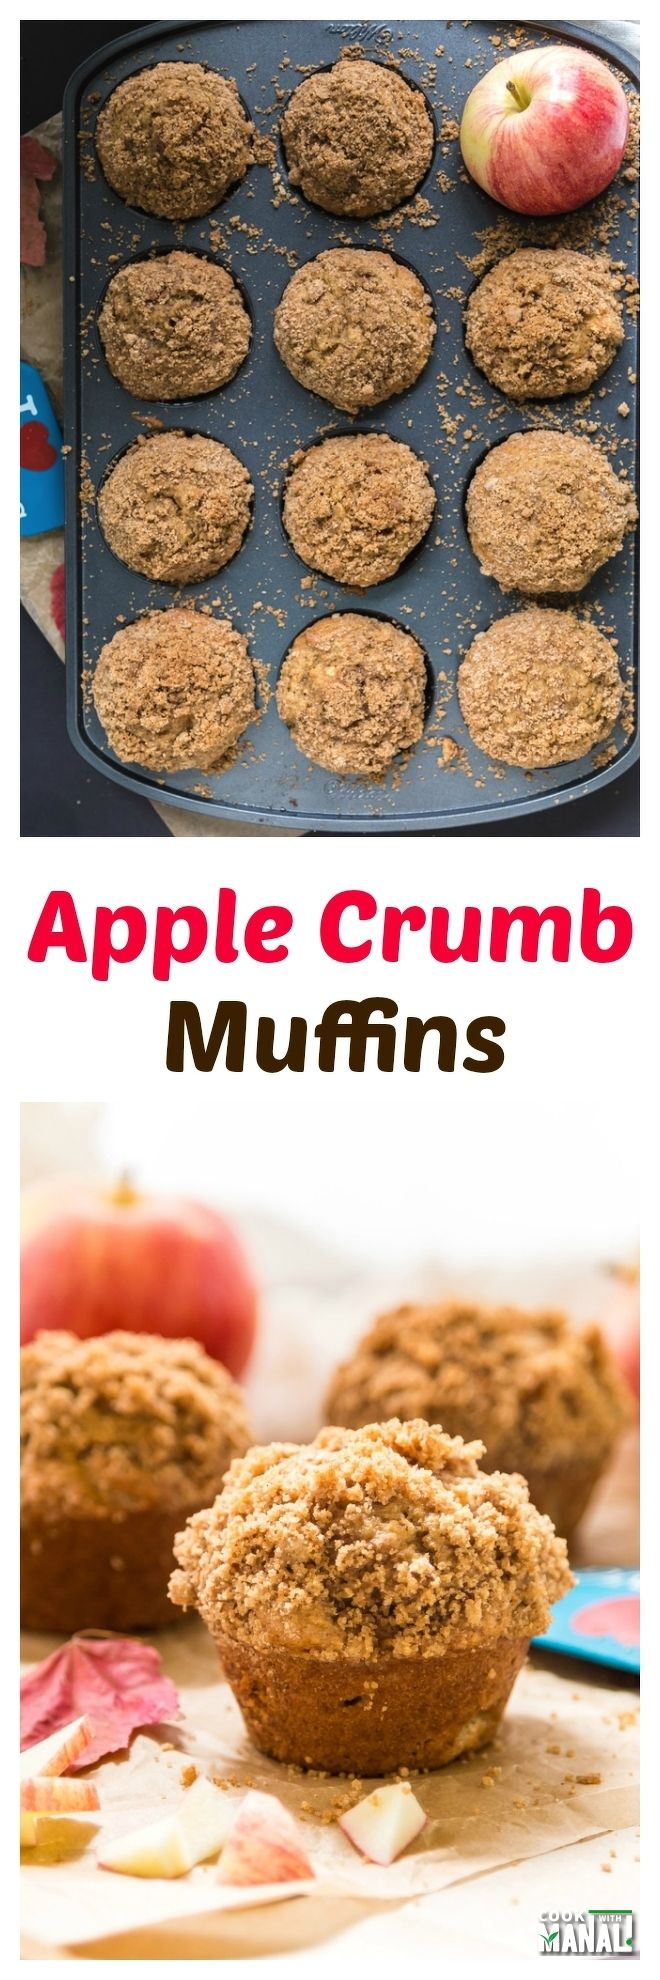 Apple Crumb Muffins Collage